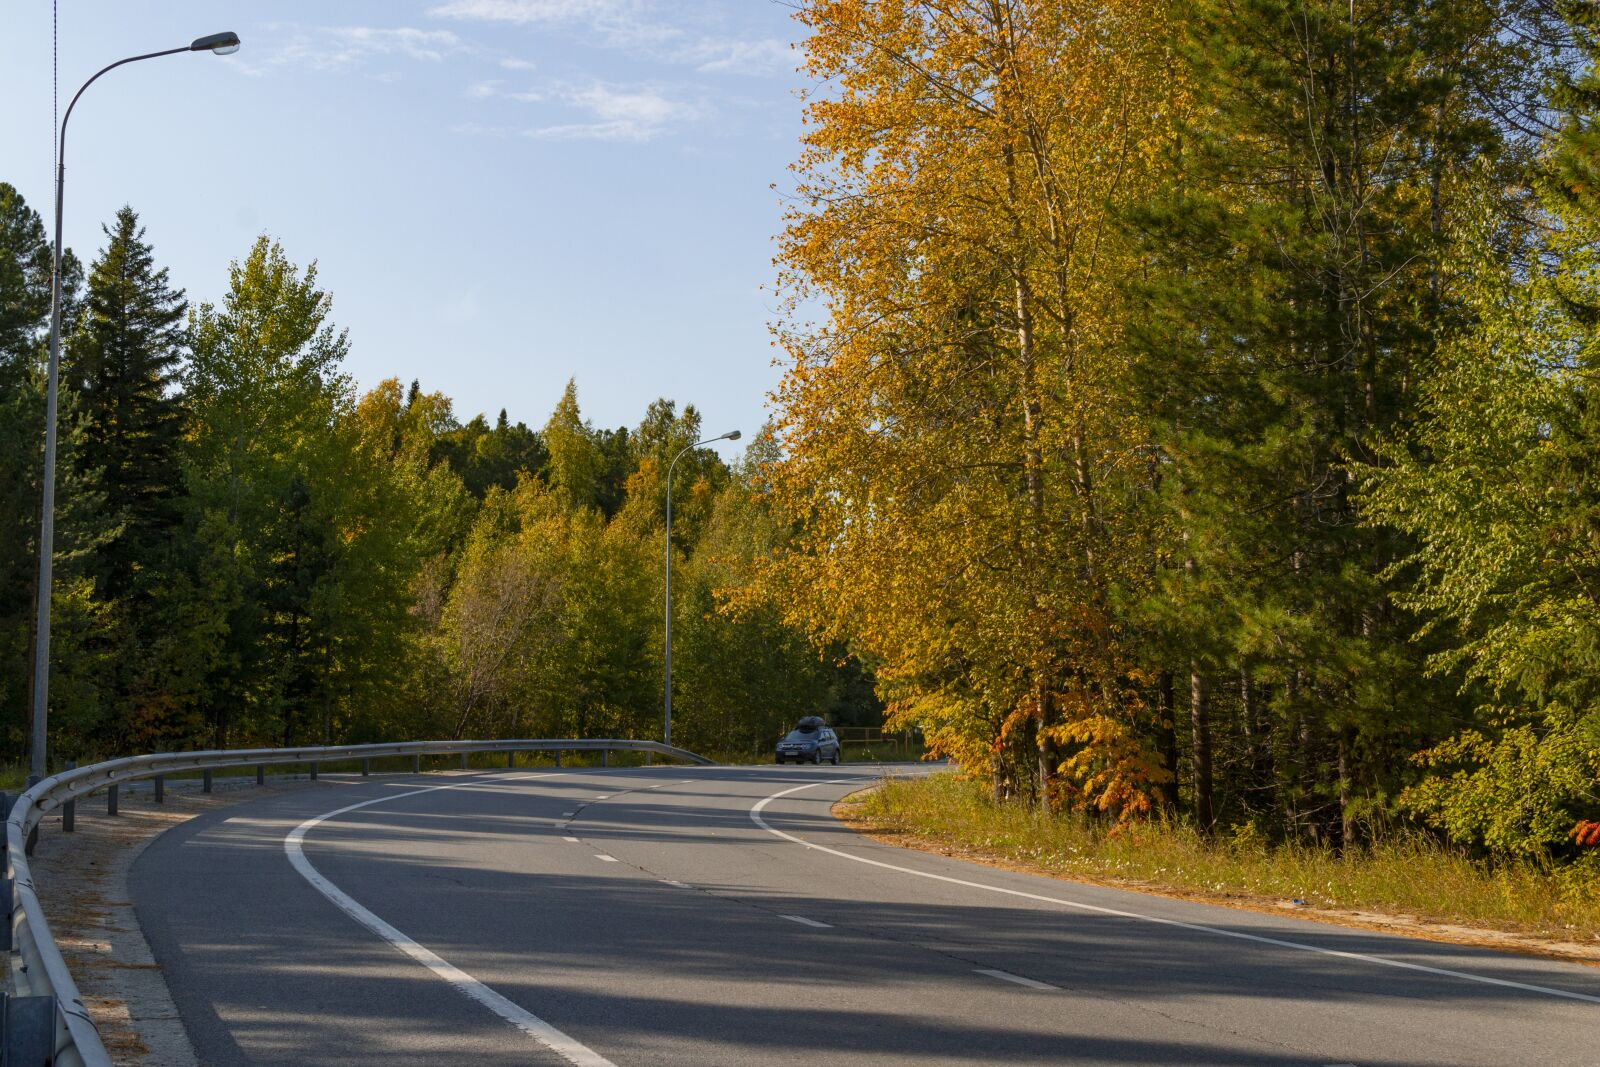 """Canon EOS 70D sample photo. """"Highway, road, roadway"""" photography"""